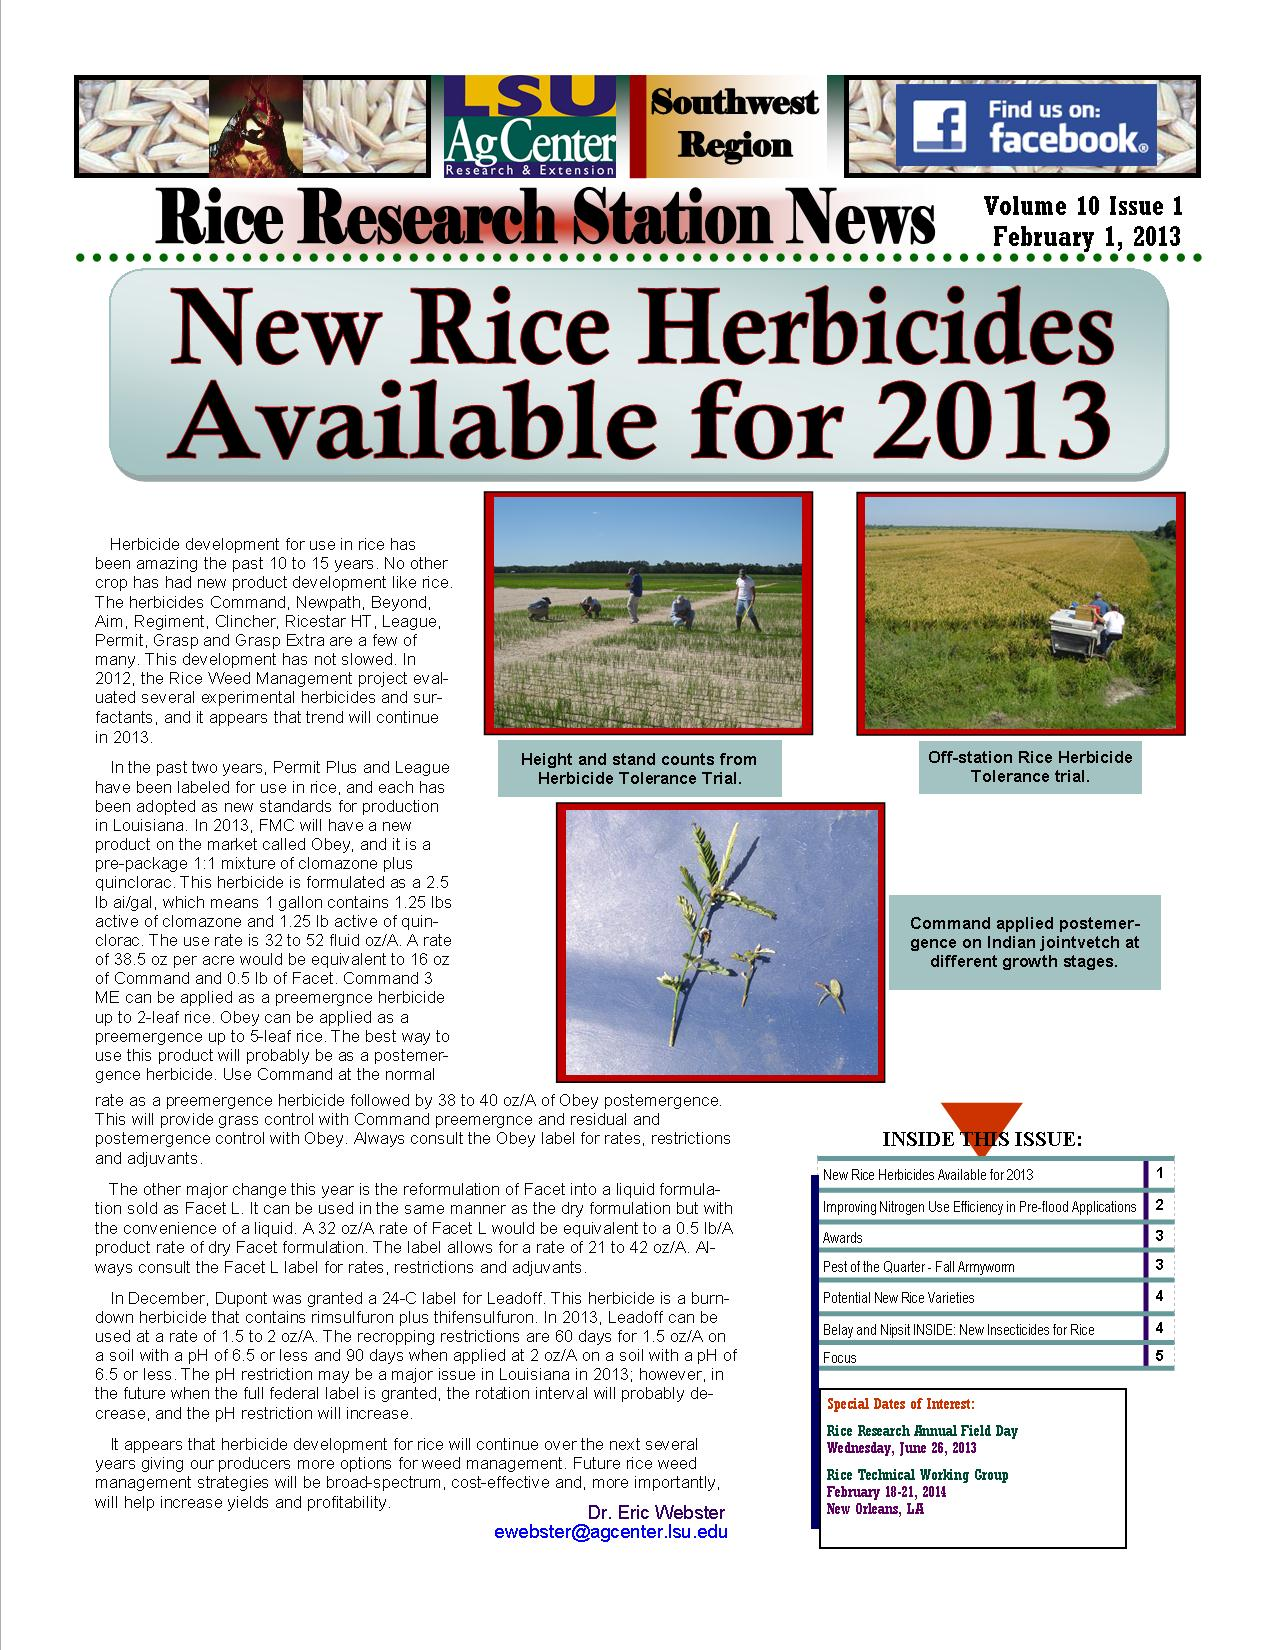 2013 Rice Research Station Newsletters